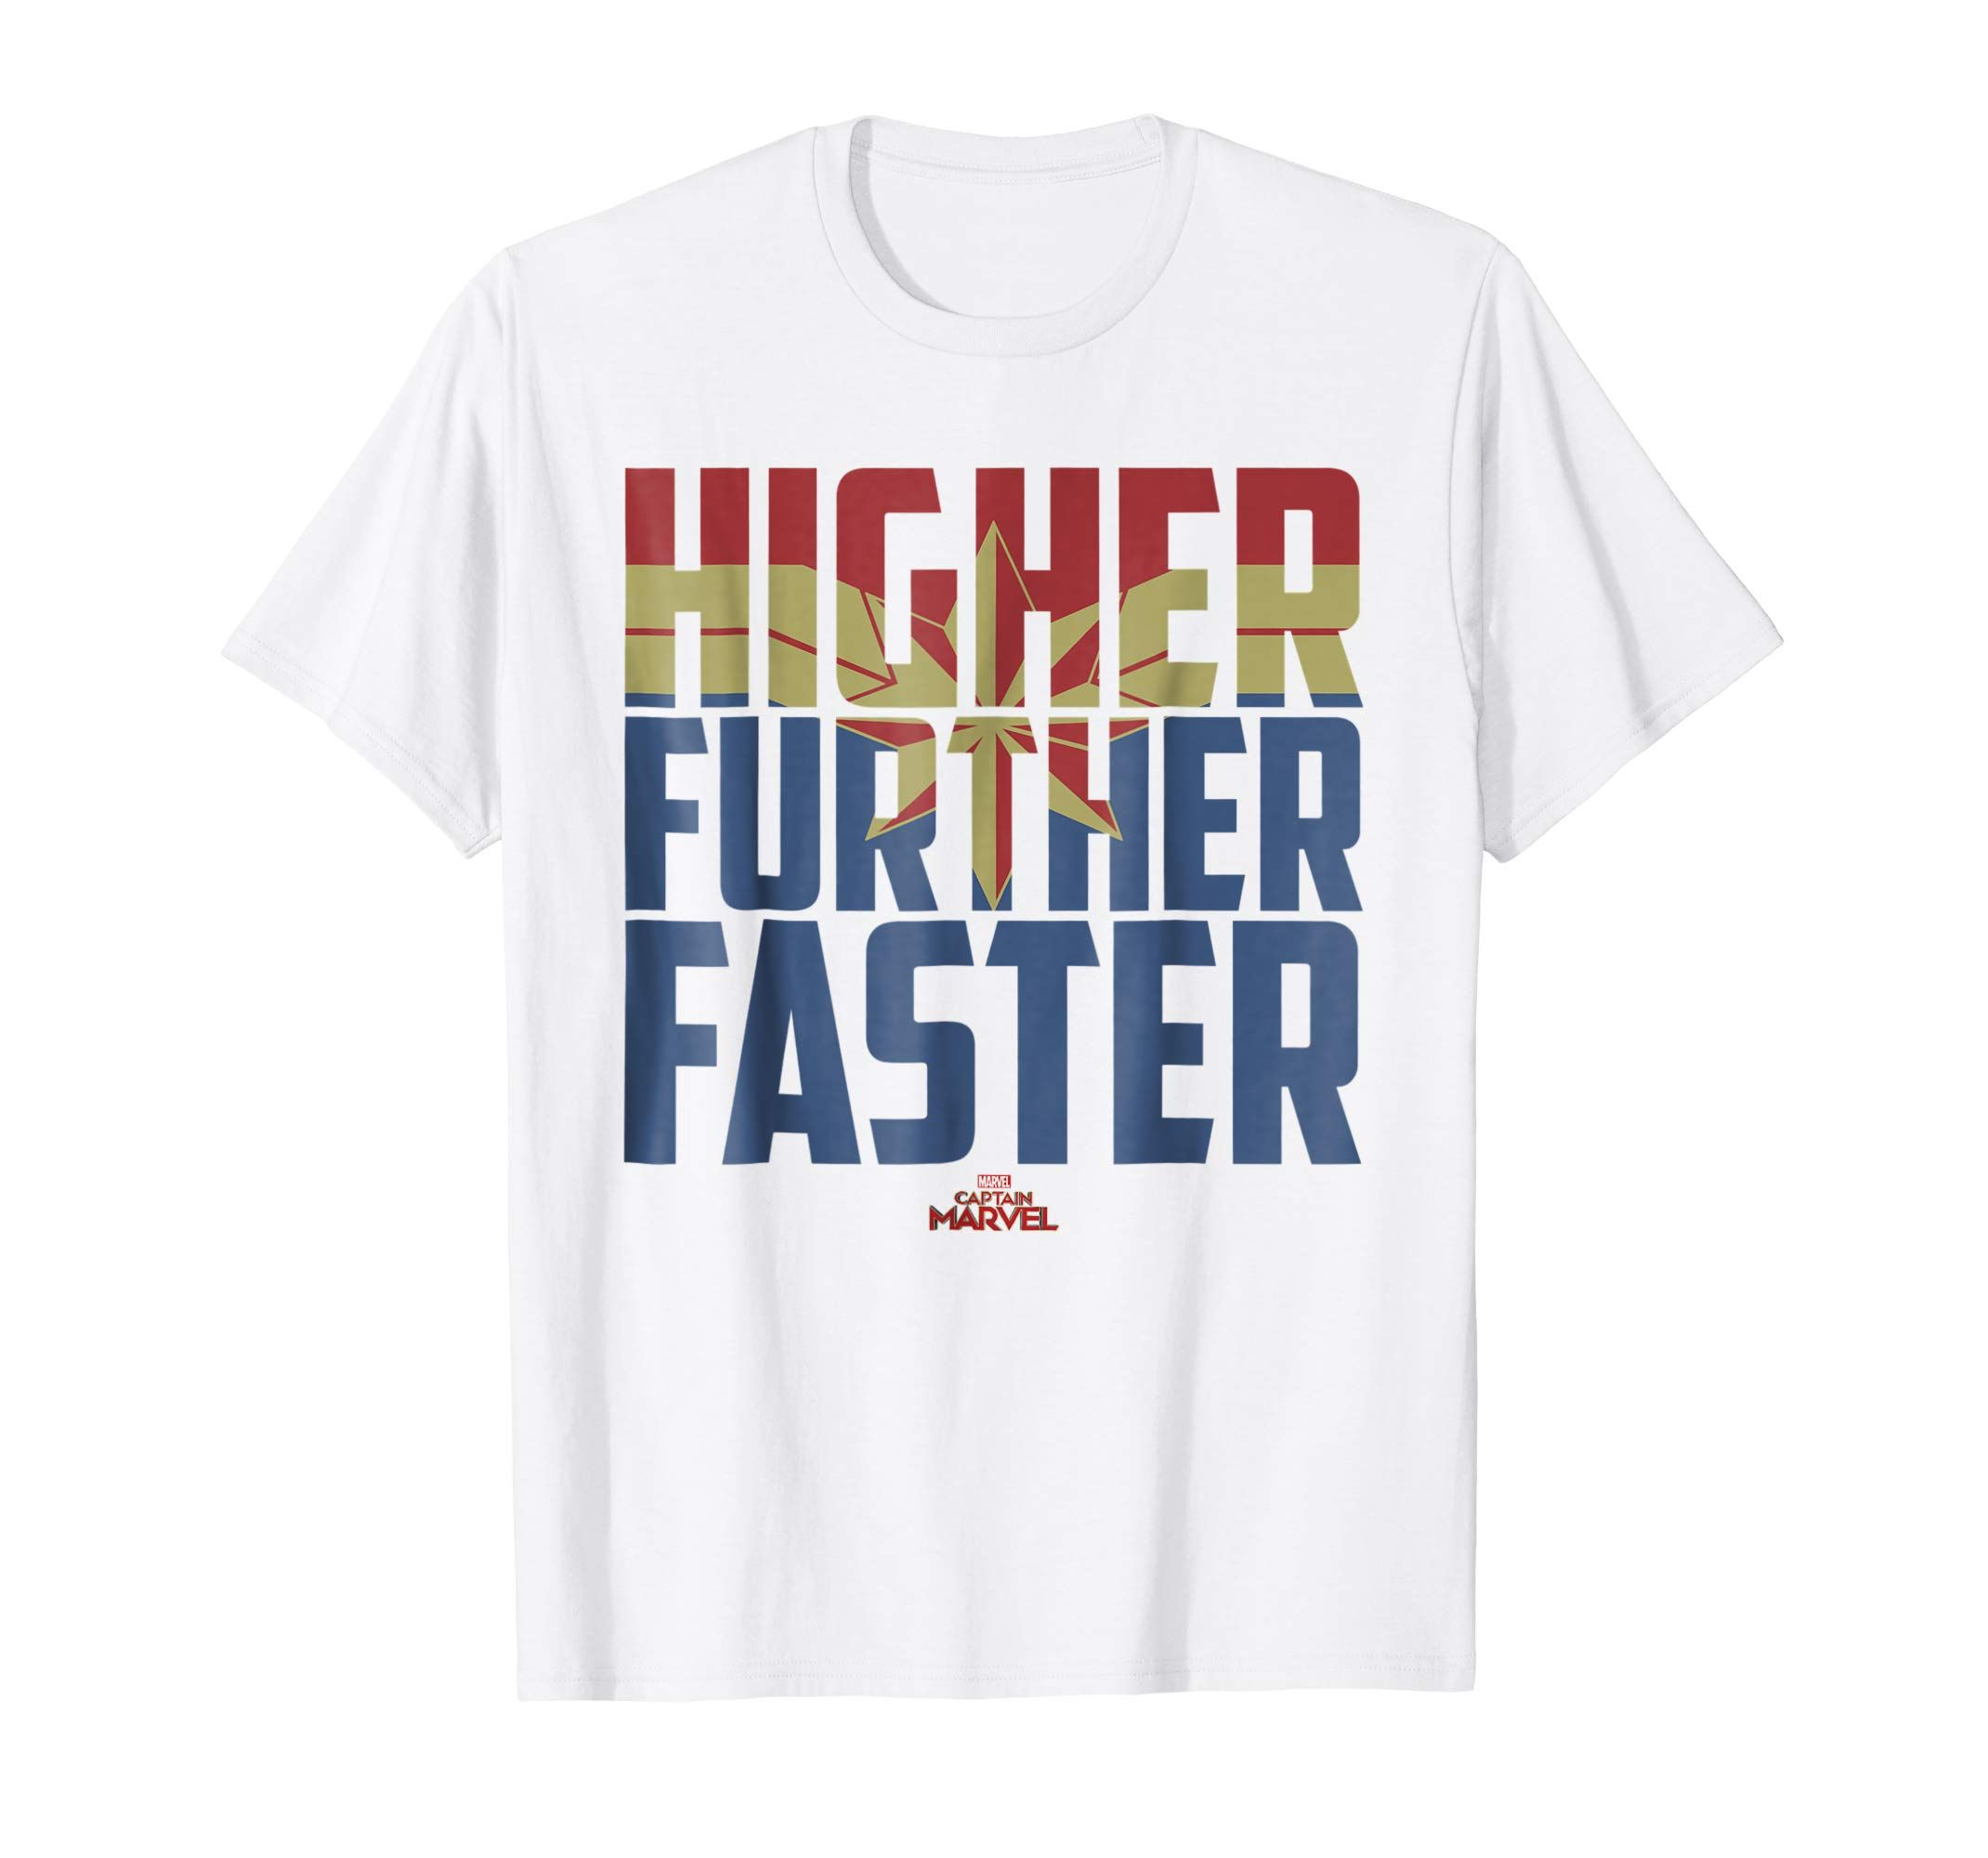 c5c791a8a6d Amazon.com  Marvel Captain Marvel Higher Faster Fill Graphic T-Shirt   Clothing